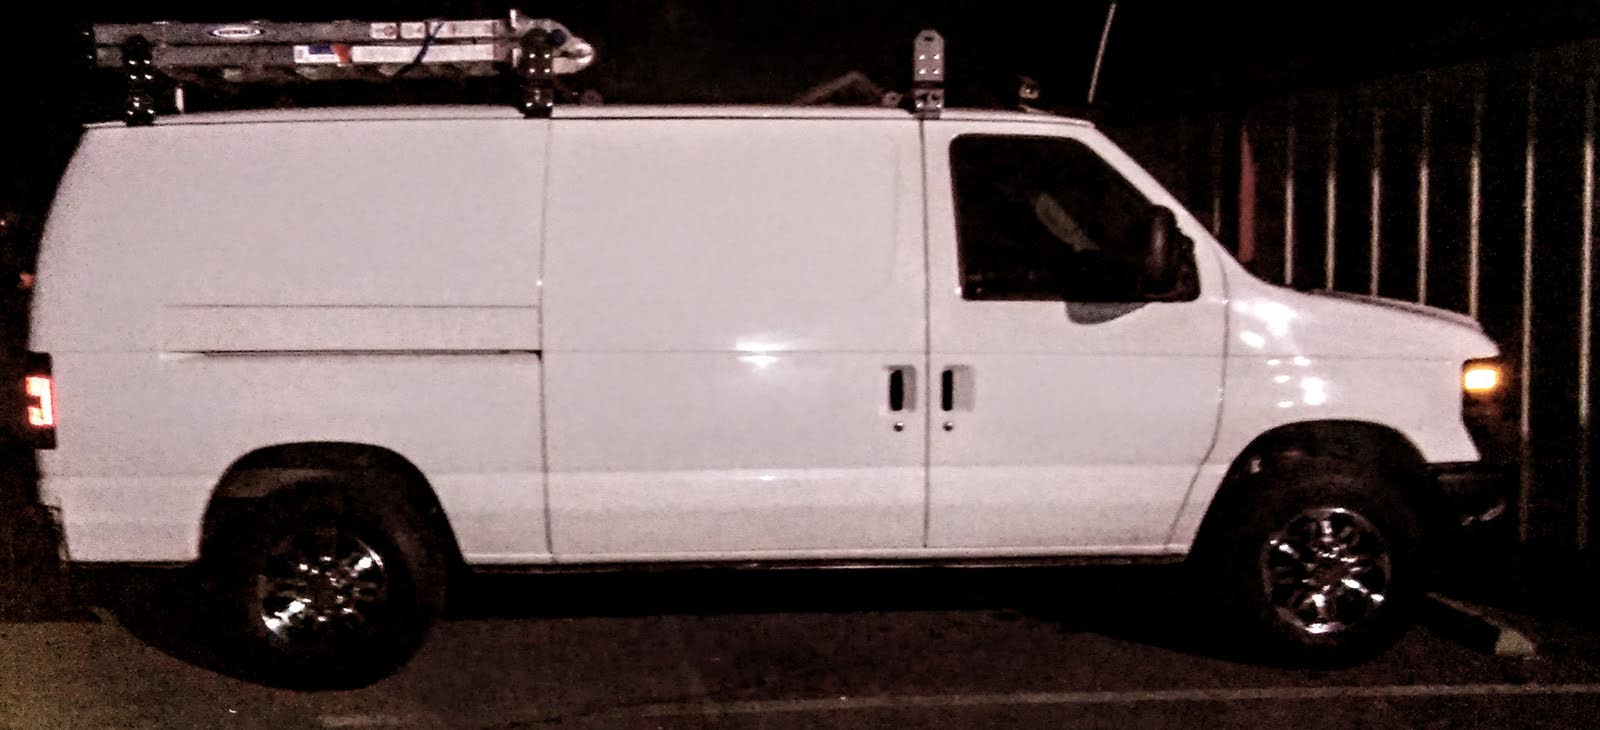 hight resolution of hope you have found and repaired your van despite your troubles the e series is a pretty rugged van